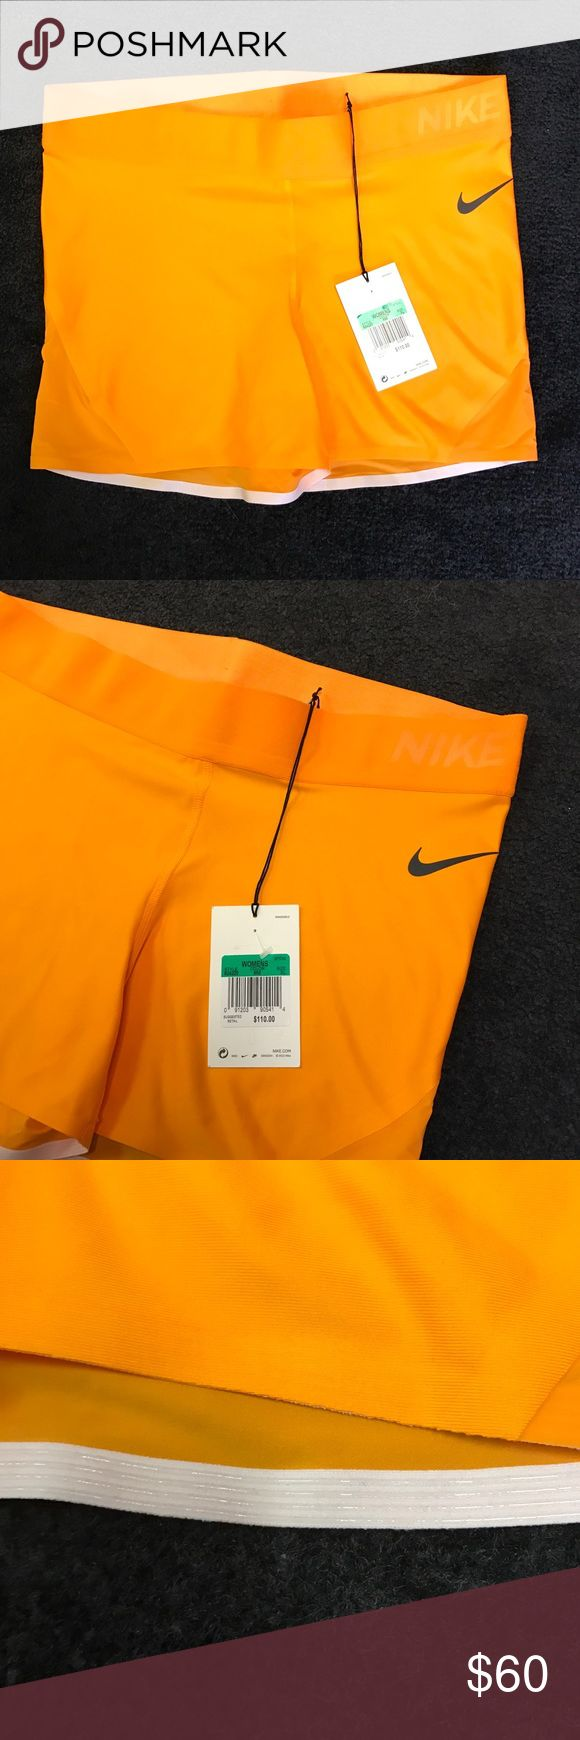 "Nike Lab Essentials Pro 3""-Orange Training Shorts Nike Lab Essentials Pro 3"" Shorts 